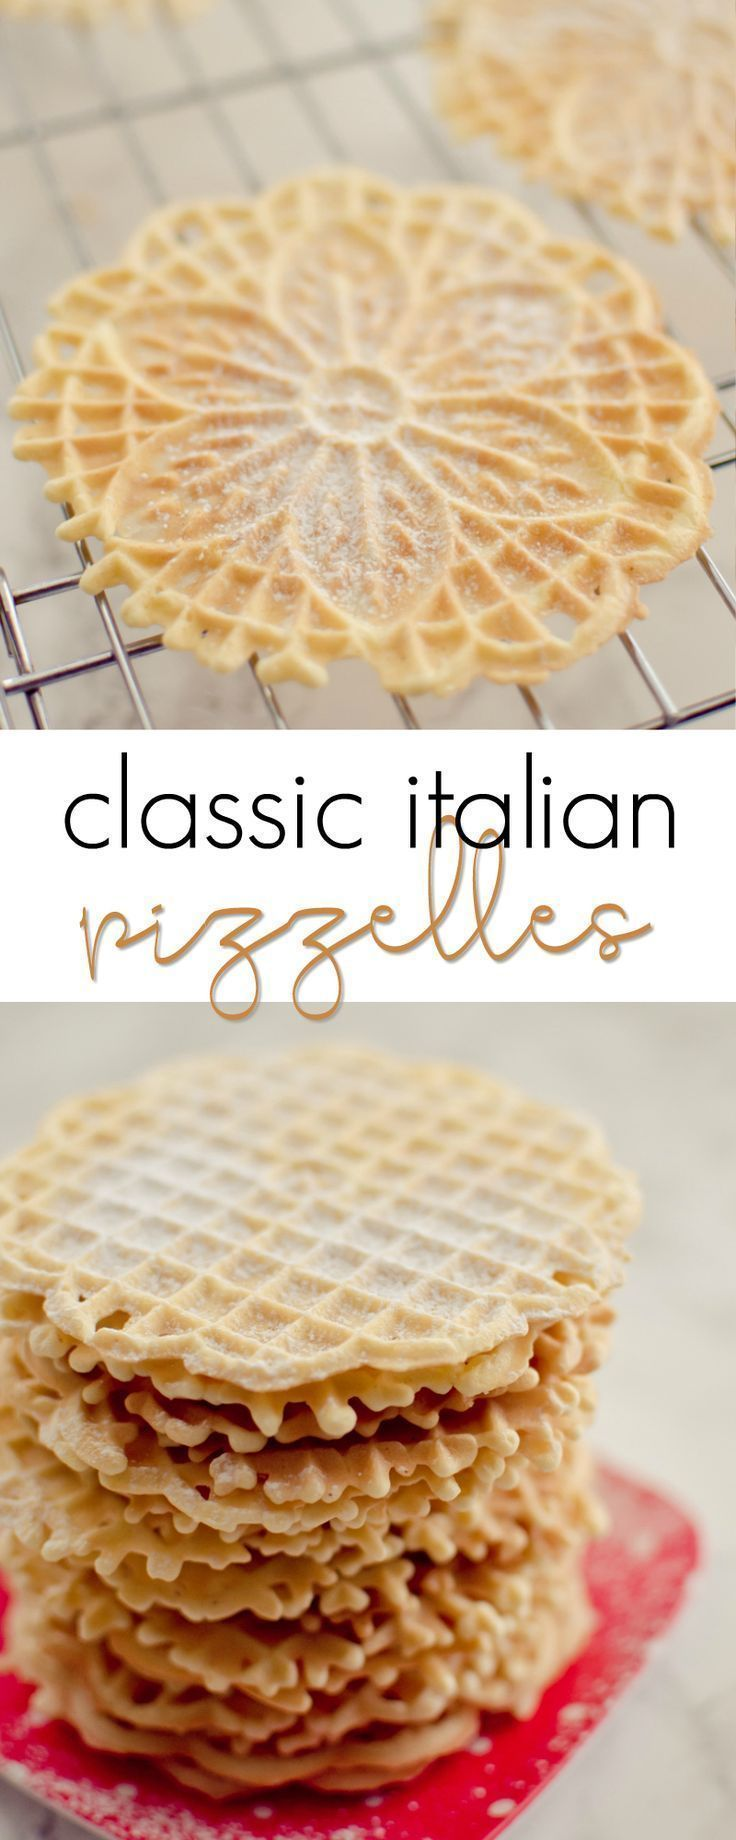 Pizzelles | Recipe | Food/drink yummy | Pinterest | Cookies, Recipes ...